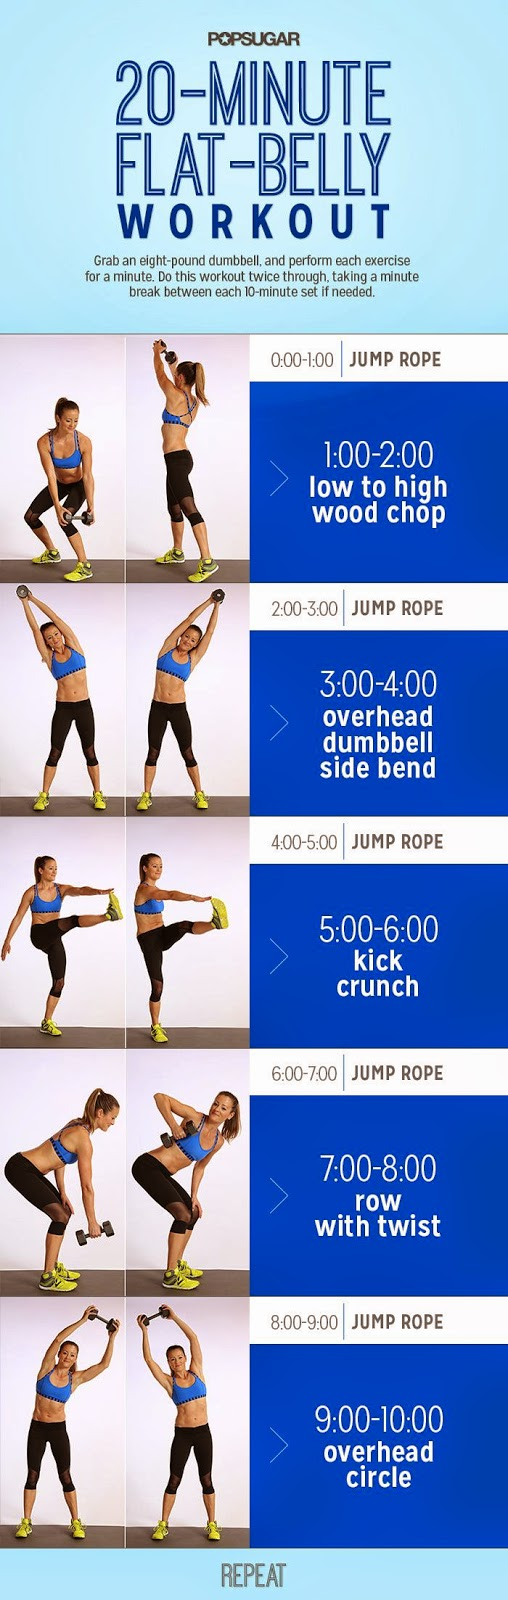 20 Minute Flat-Belly Workout - Infographic